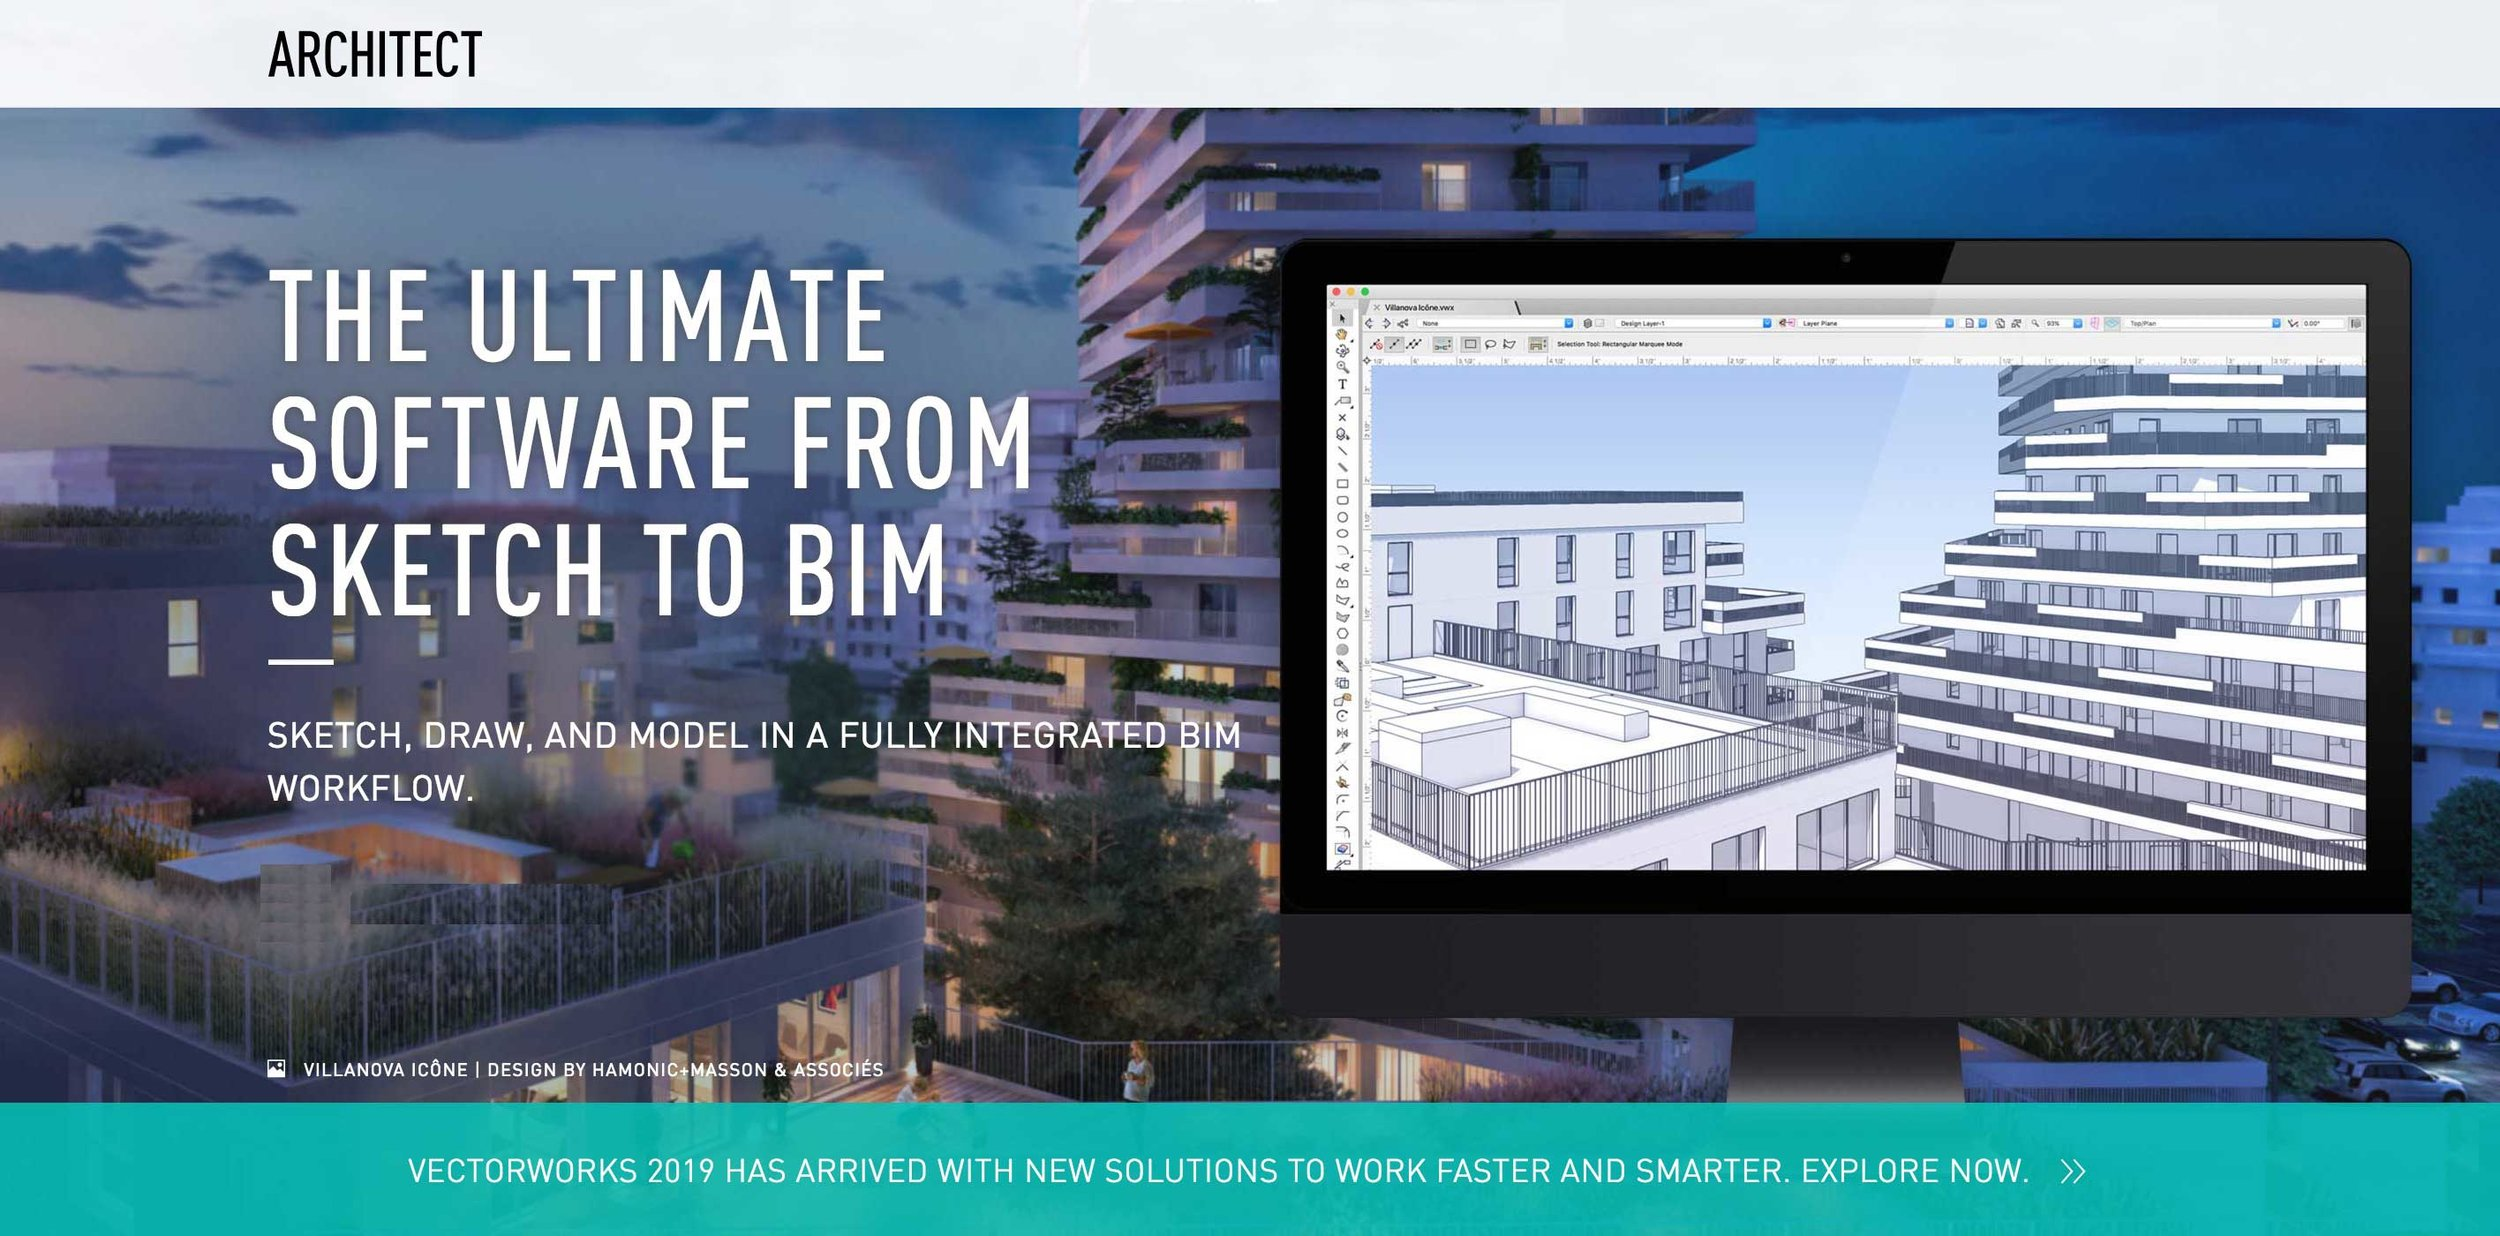 _Vectorworks_Architect___BIM_and_3D_Modeling_Software.jpg